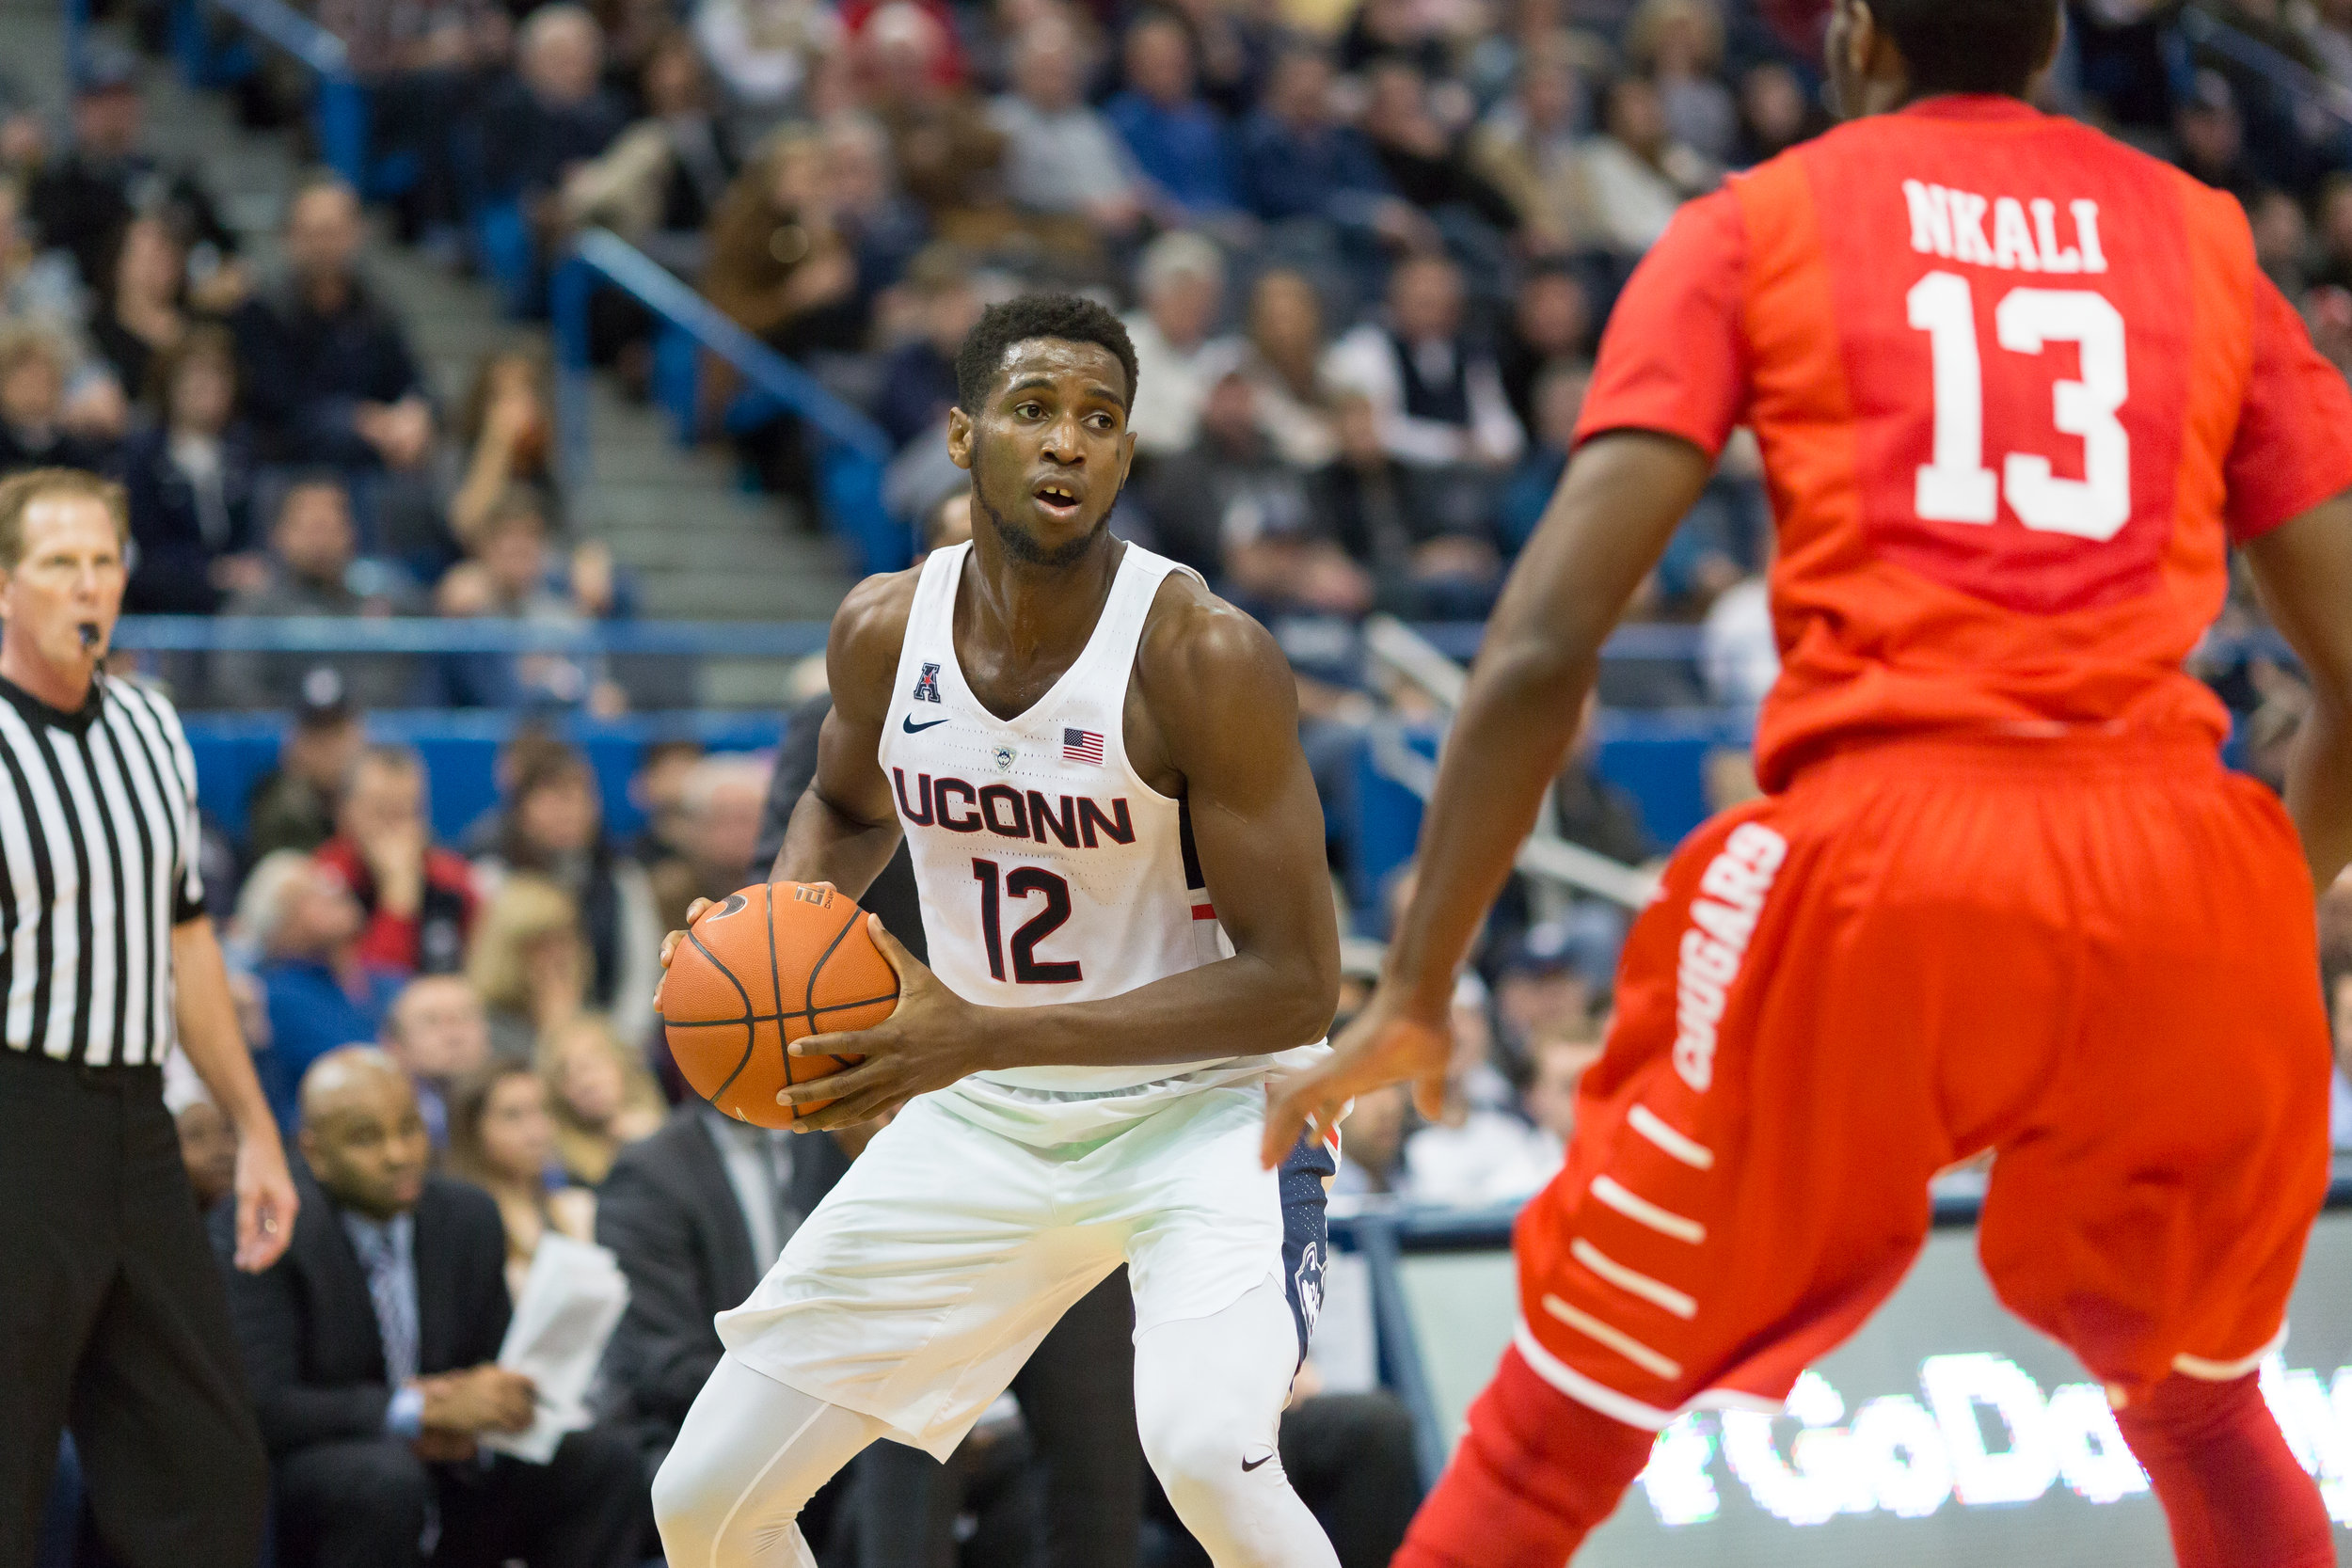 Kentan Facey looks to pass during UConn's 62-46 loss to Houston on Wednesday, Dec. 28, 2016 at the XL Center in Hartford. The Huskies will conclude their brief road stint when they take on Memphis at Memphis in search of their first conference win. (Tyler Benton/The Daily Campus)